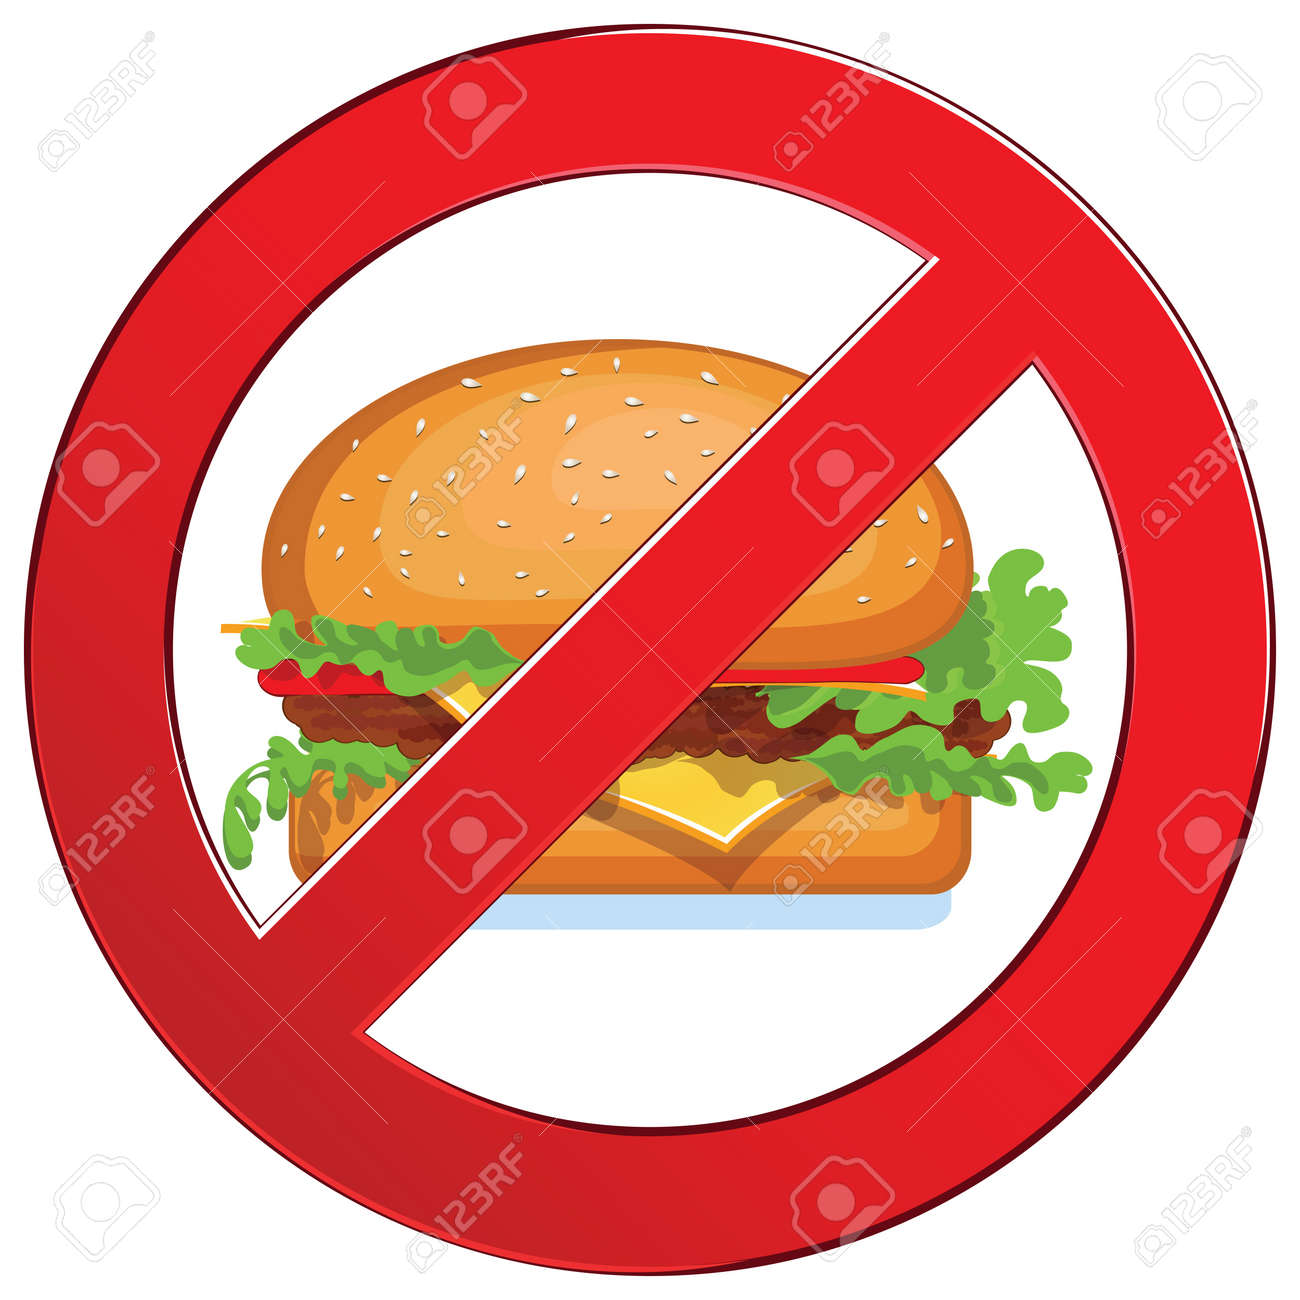 Sign forbidden fast food  Medical concept circle  Prohibited symbol isolated illustration Stock Vector - 18206129